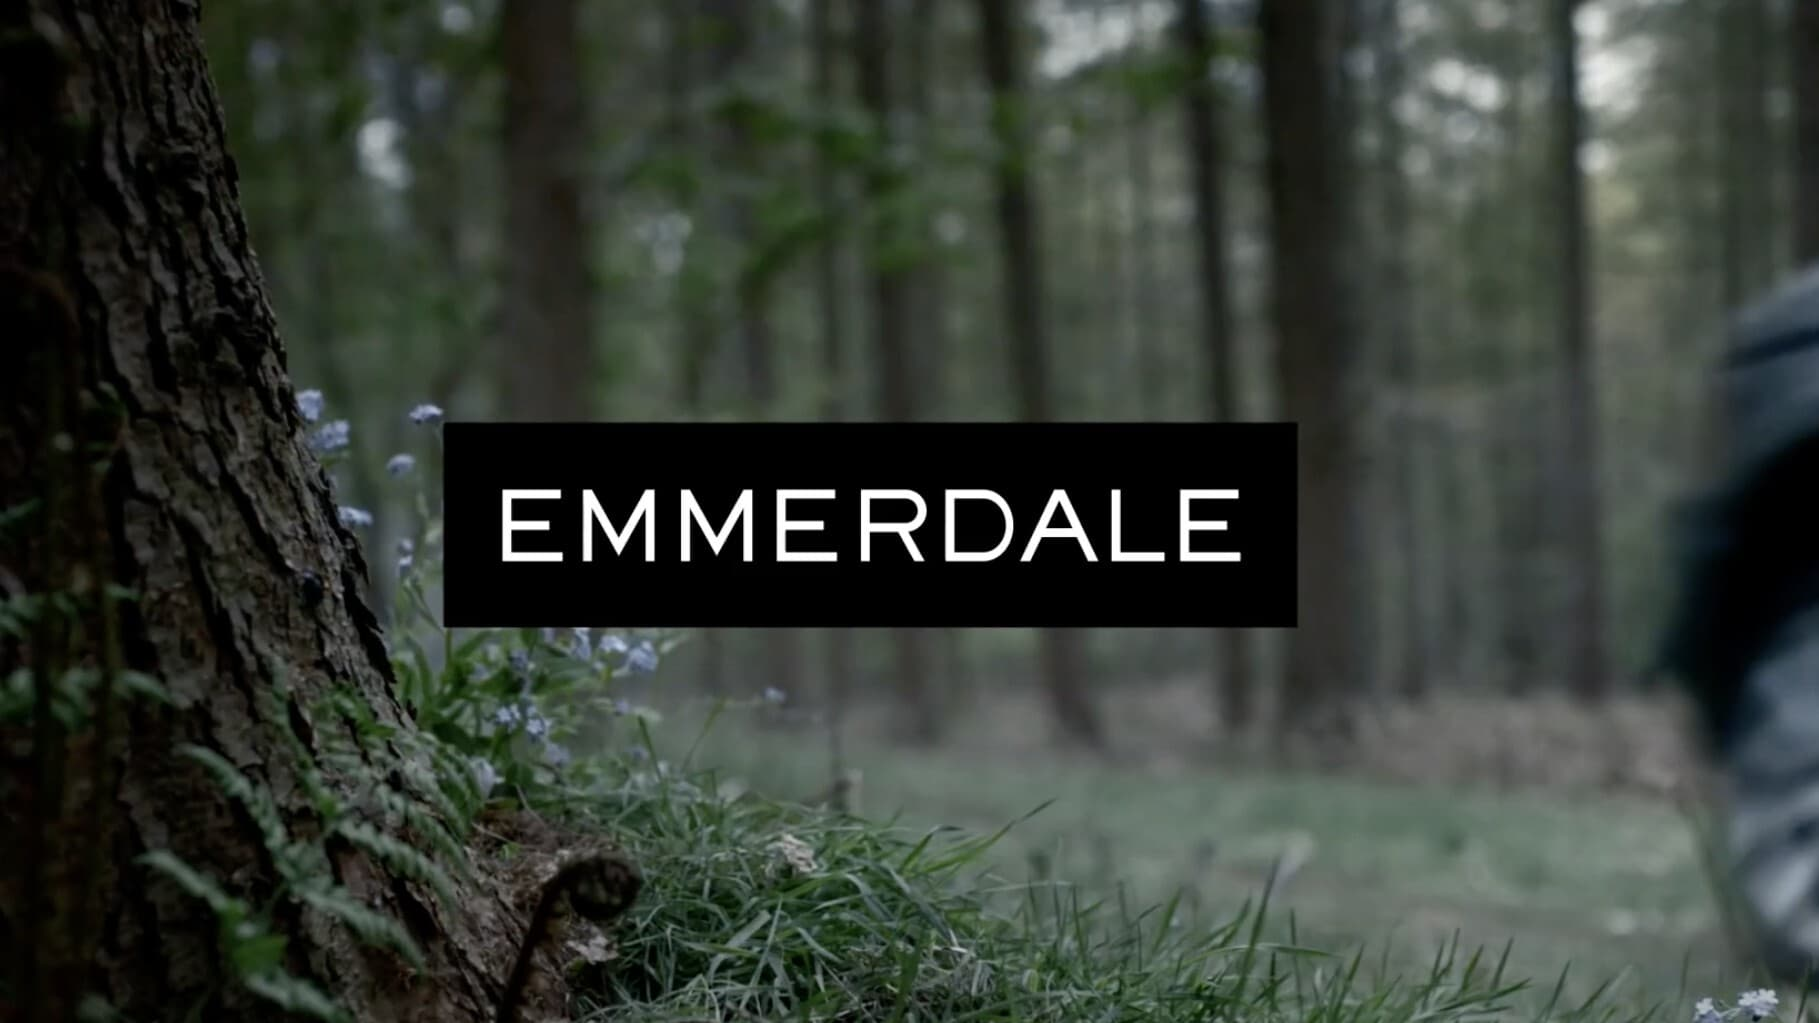 Emmerdale - Season 36 Episode 136 : June 13, 2007